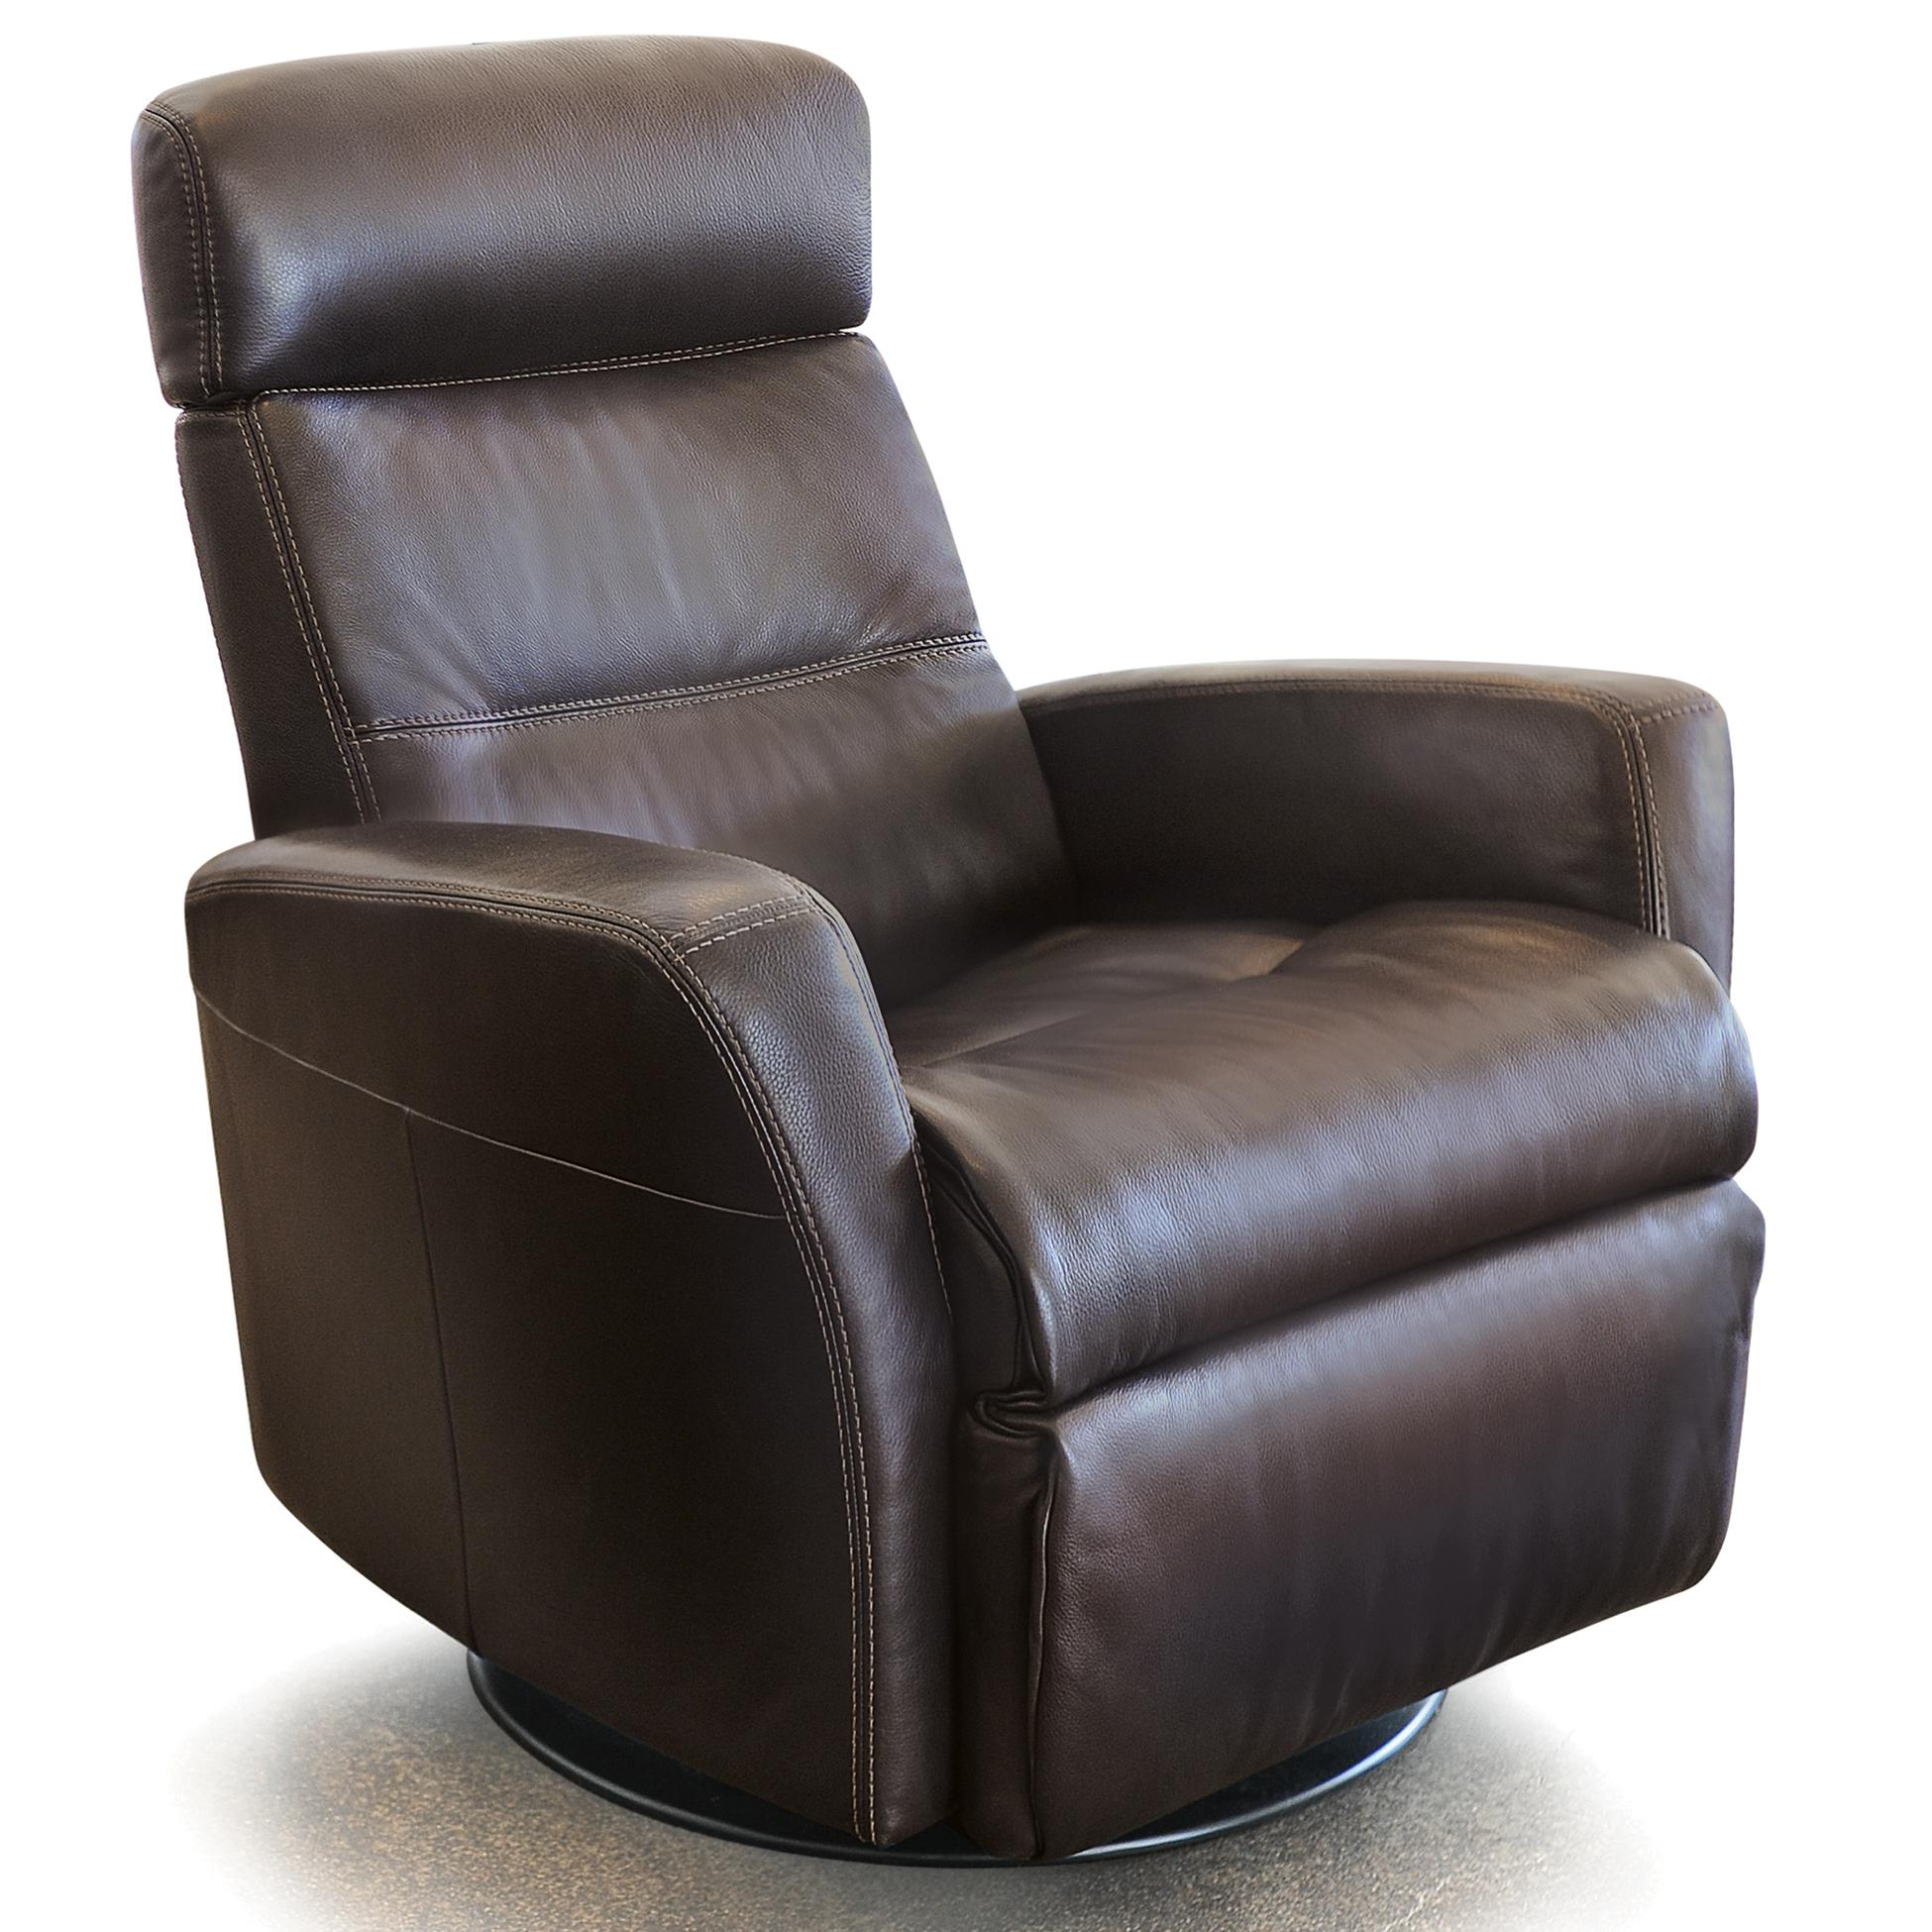 Recliners Recliner Relaxer by Vendor 508 at Becker Furniture